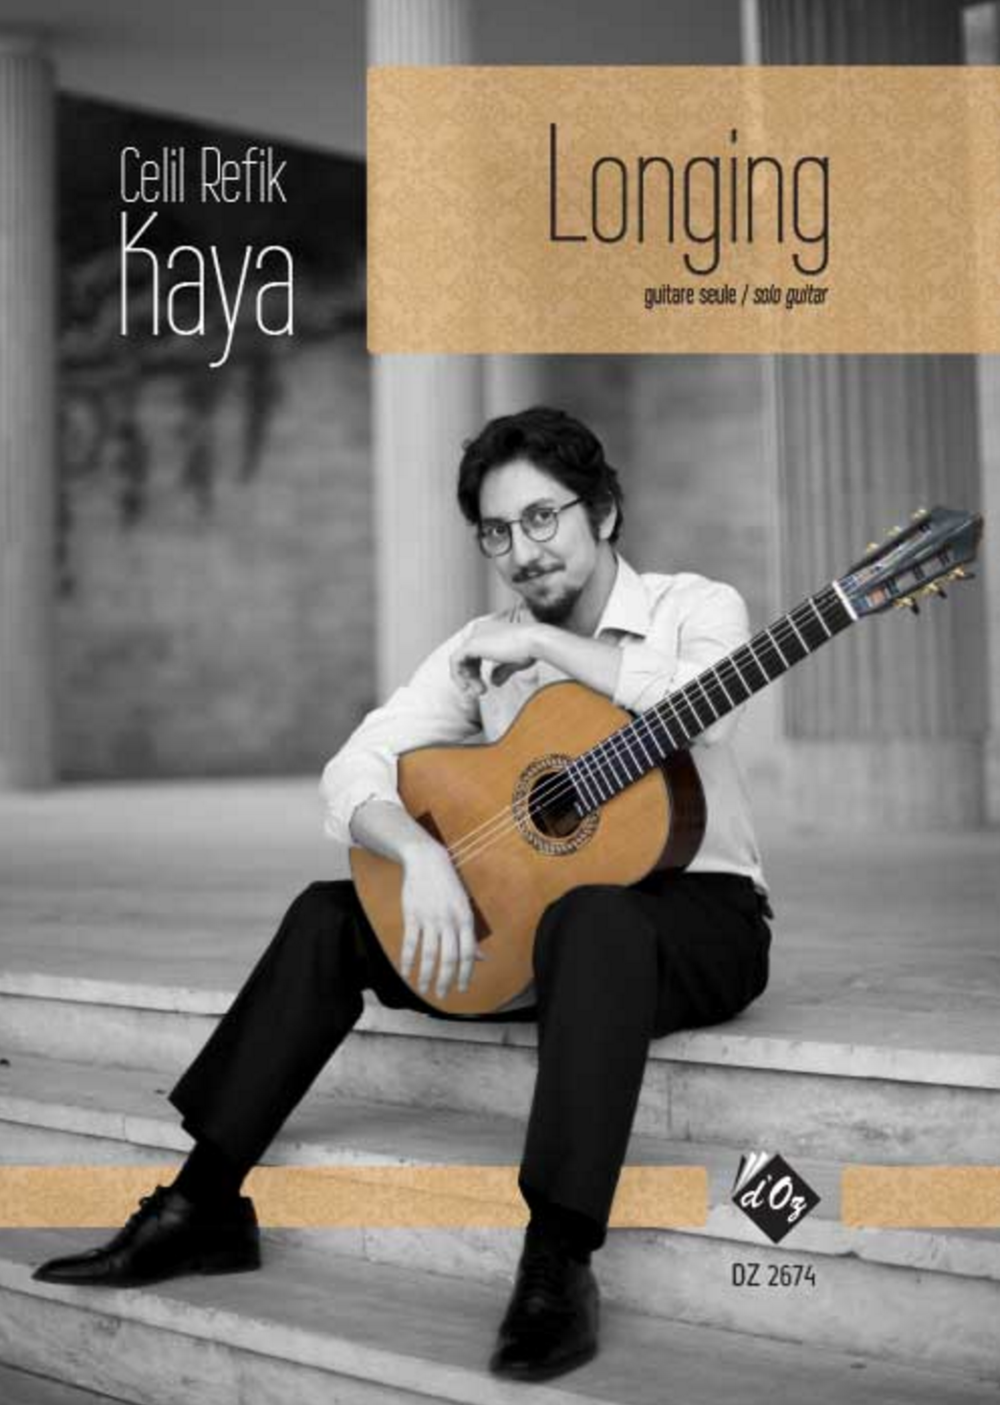 Longing for solo guitar Composer : Celil Refik Kaya Published: Les Productions d'OZ